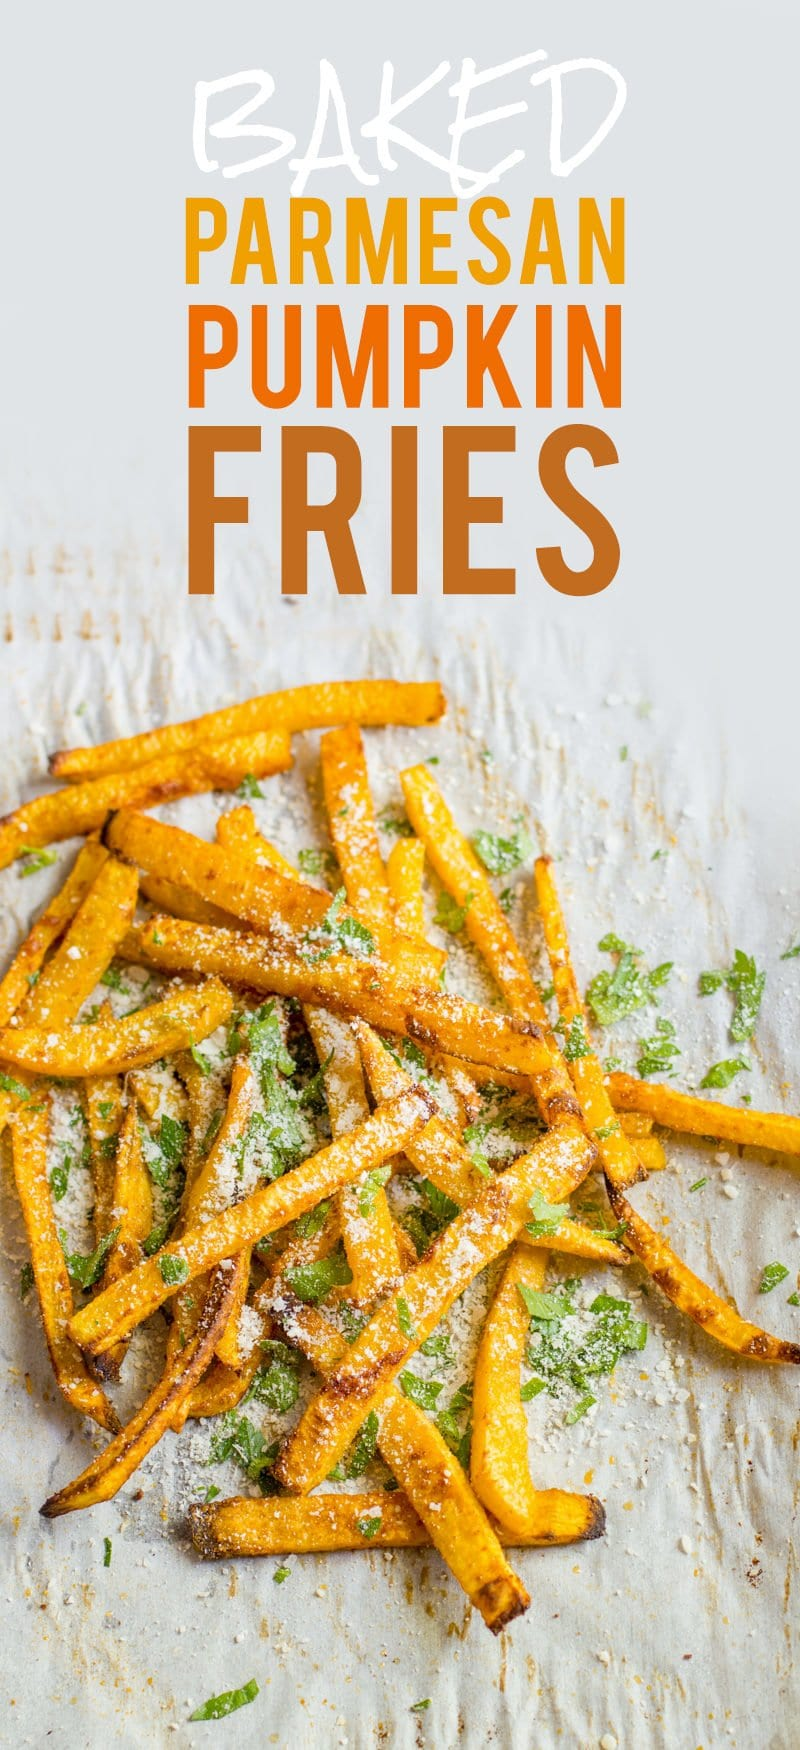 Baked Parmesan Pumpkin Fries